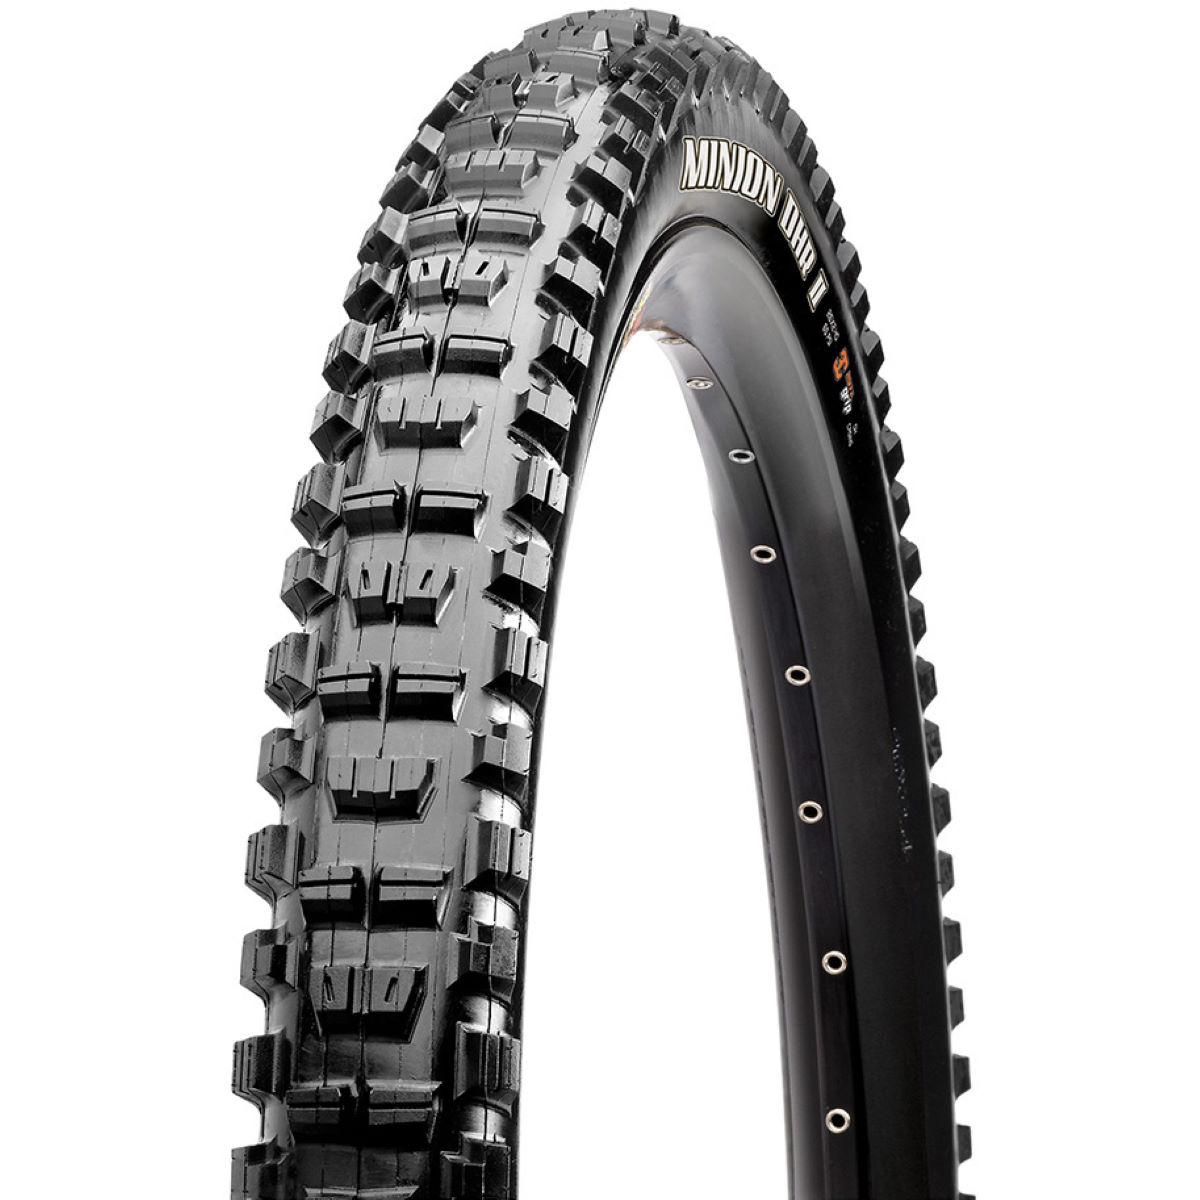 Maxxis Maxxis Minion DHR II Tyre - 3C - TR - DD   Tyres